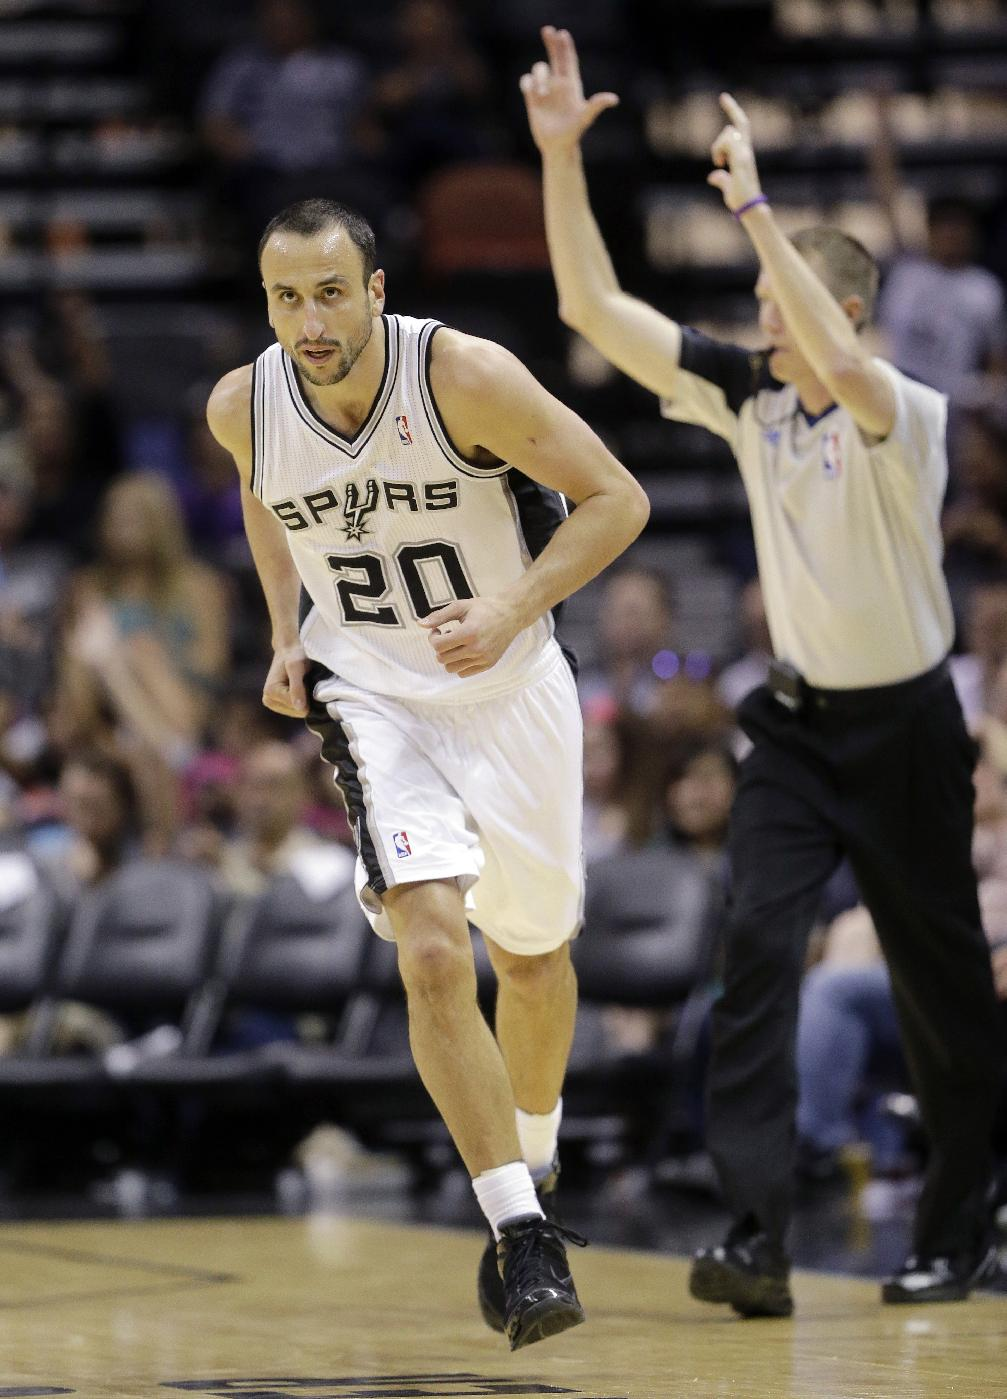 San Antonio Spurs' Manu Ginobili, of Argentina, runs up court after scoring against CSKA Moscow during the second half of an exhibition NBA basketball game, Wednesday, Oct. 9, 2013, in San Antonio. San Antonio won 95-93 in overtime